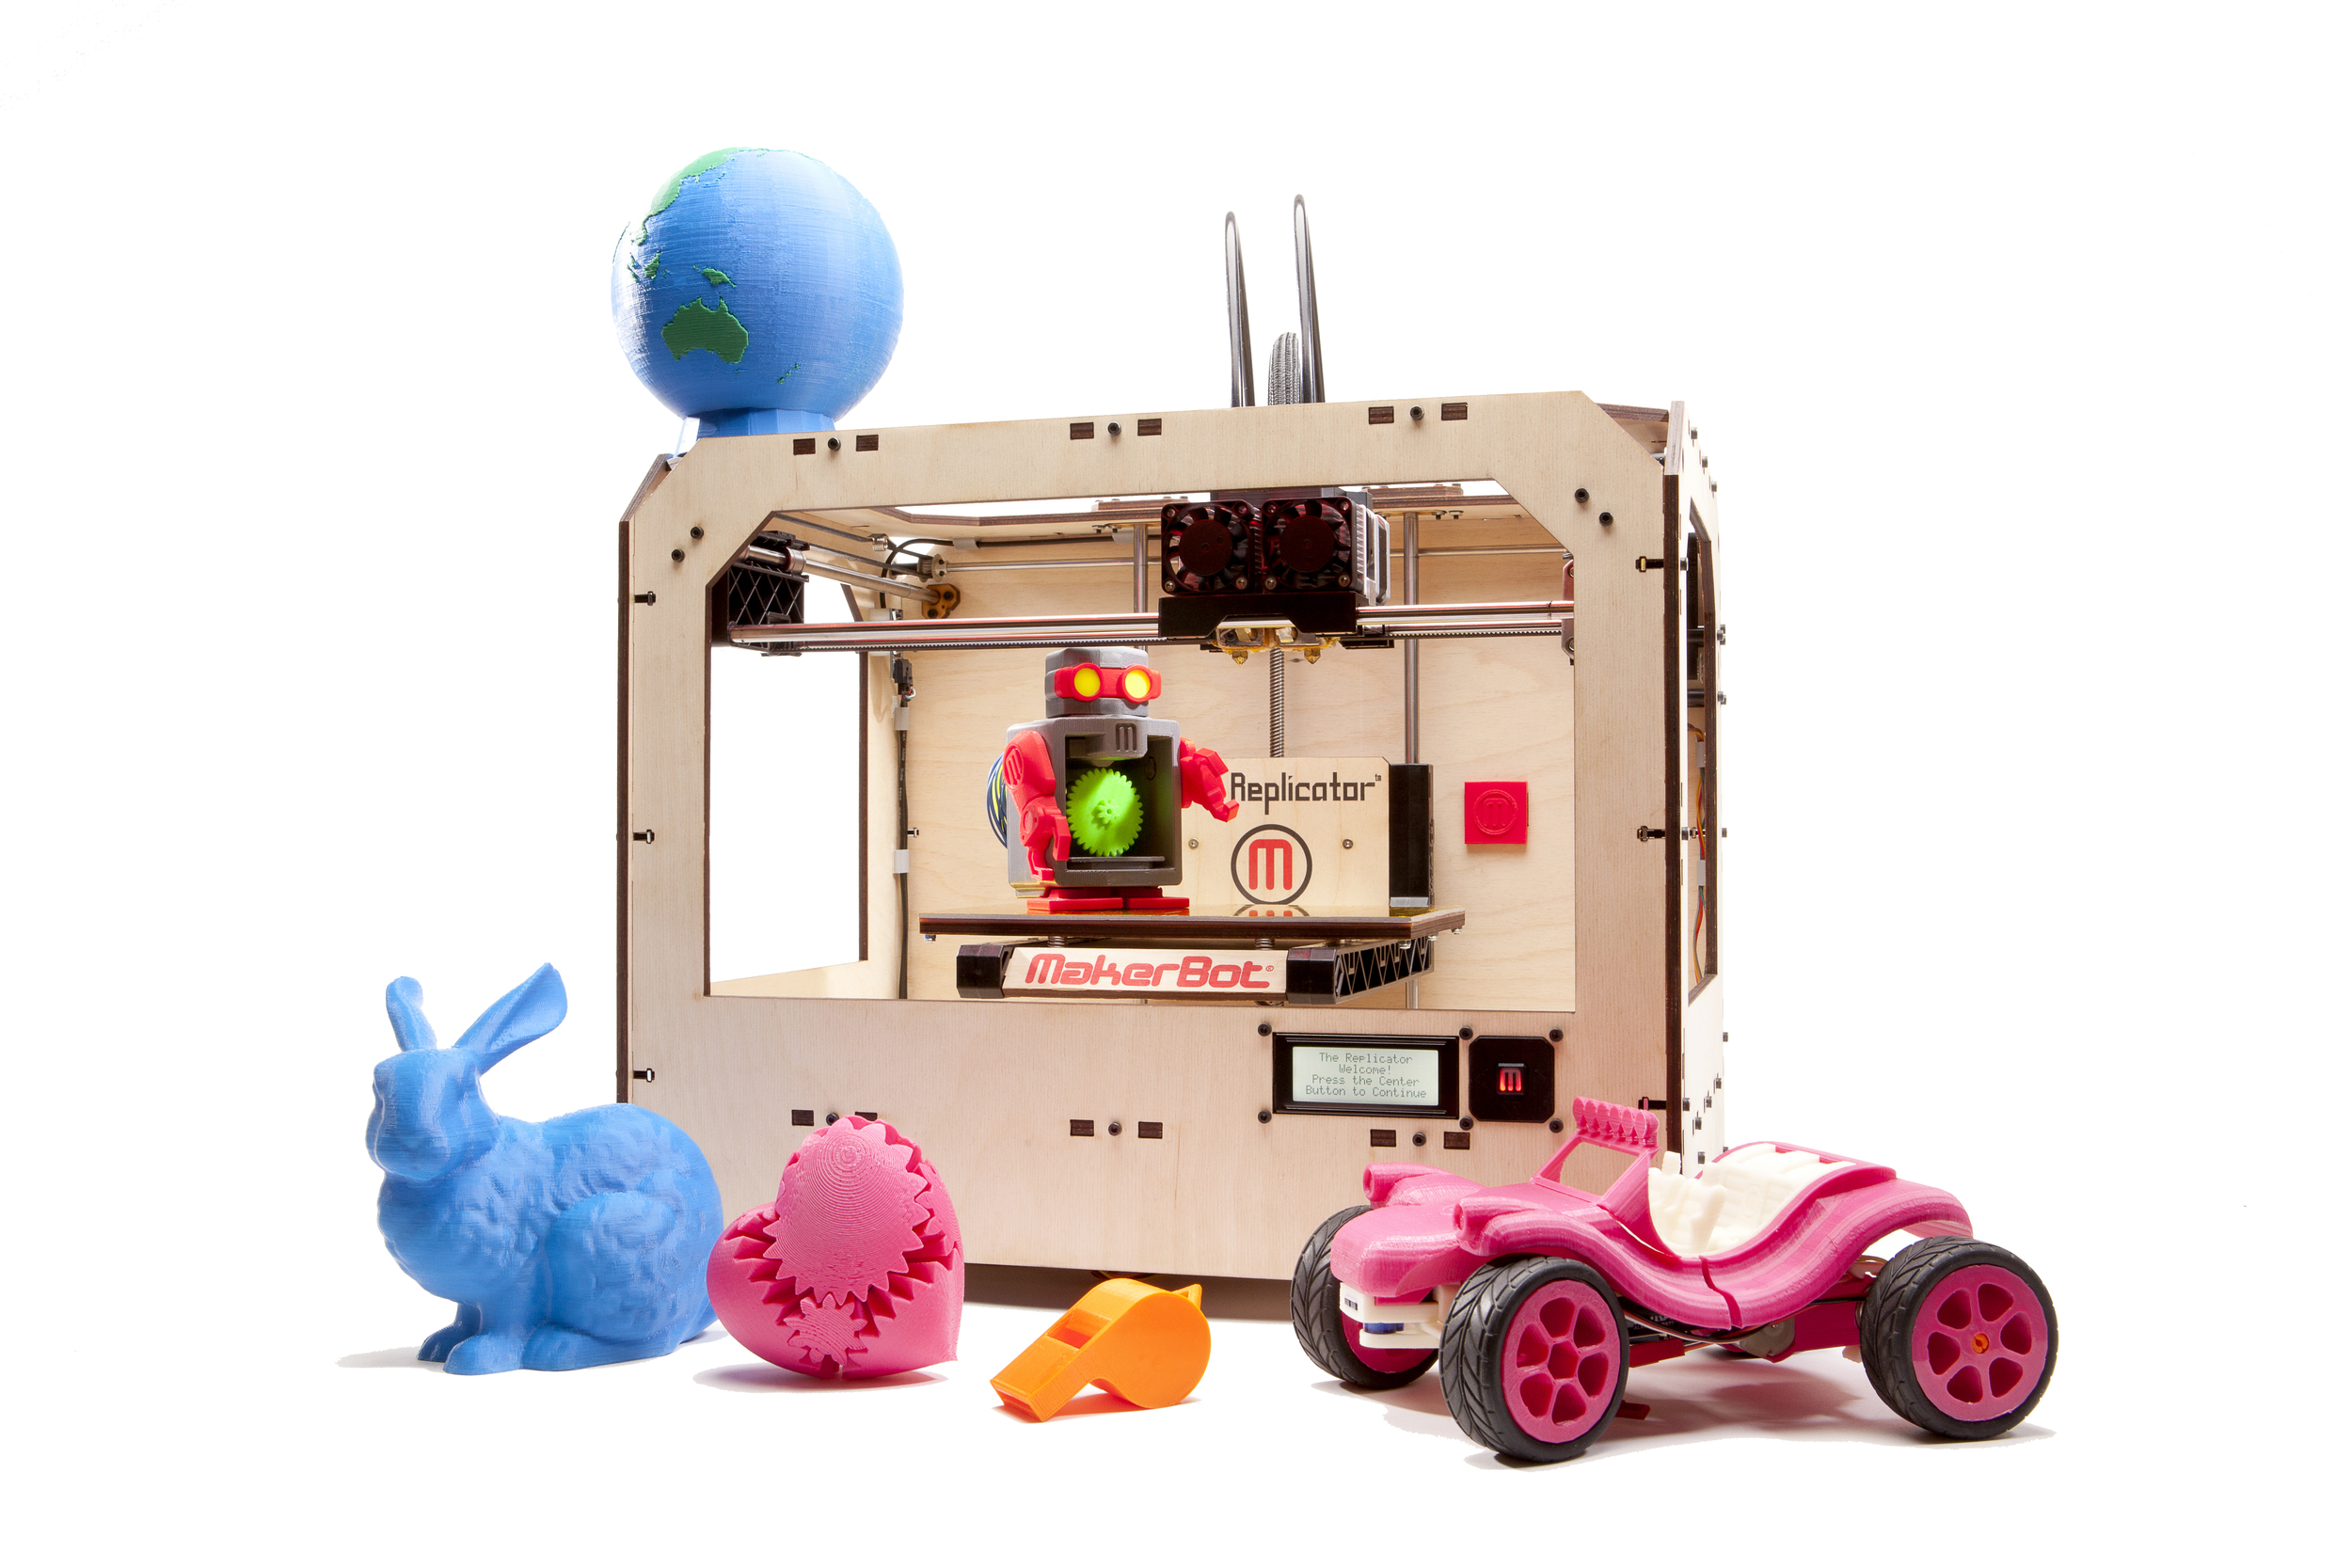 MakerBot's inexpensive 3D printing kit innovates in a number of ways, spawning not just colorful toys but a vibrant ecosystem—the Thingiverse —to bring together creative and practical designs from across the world.      Photo courtesy  http://www.makerbot.com/